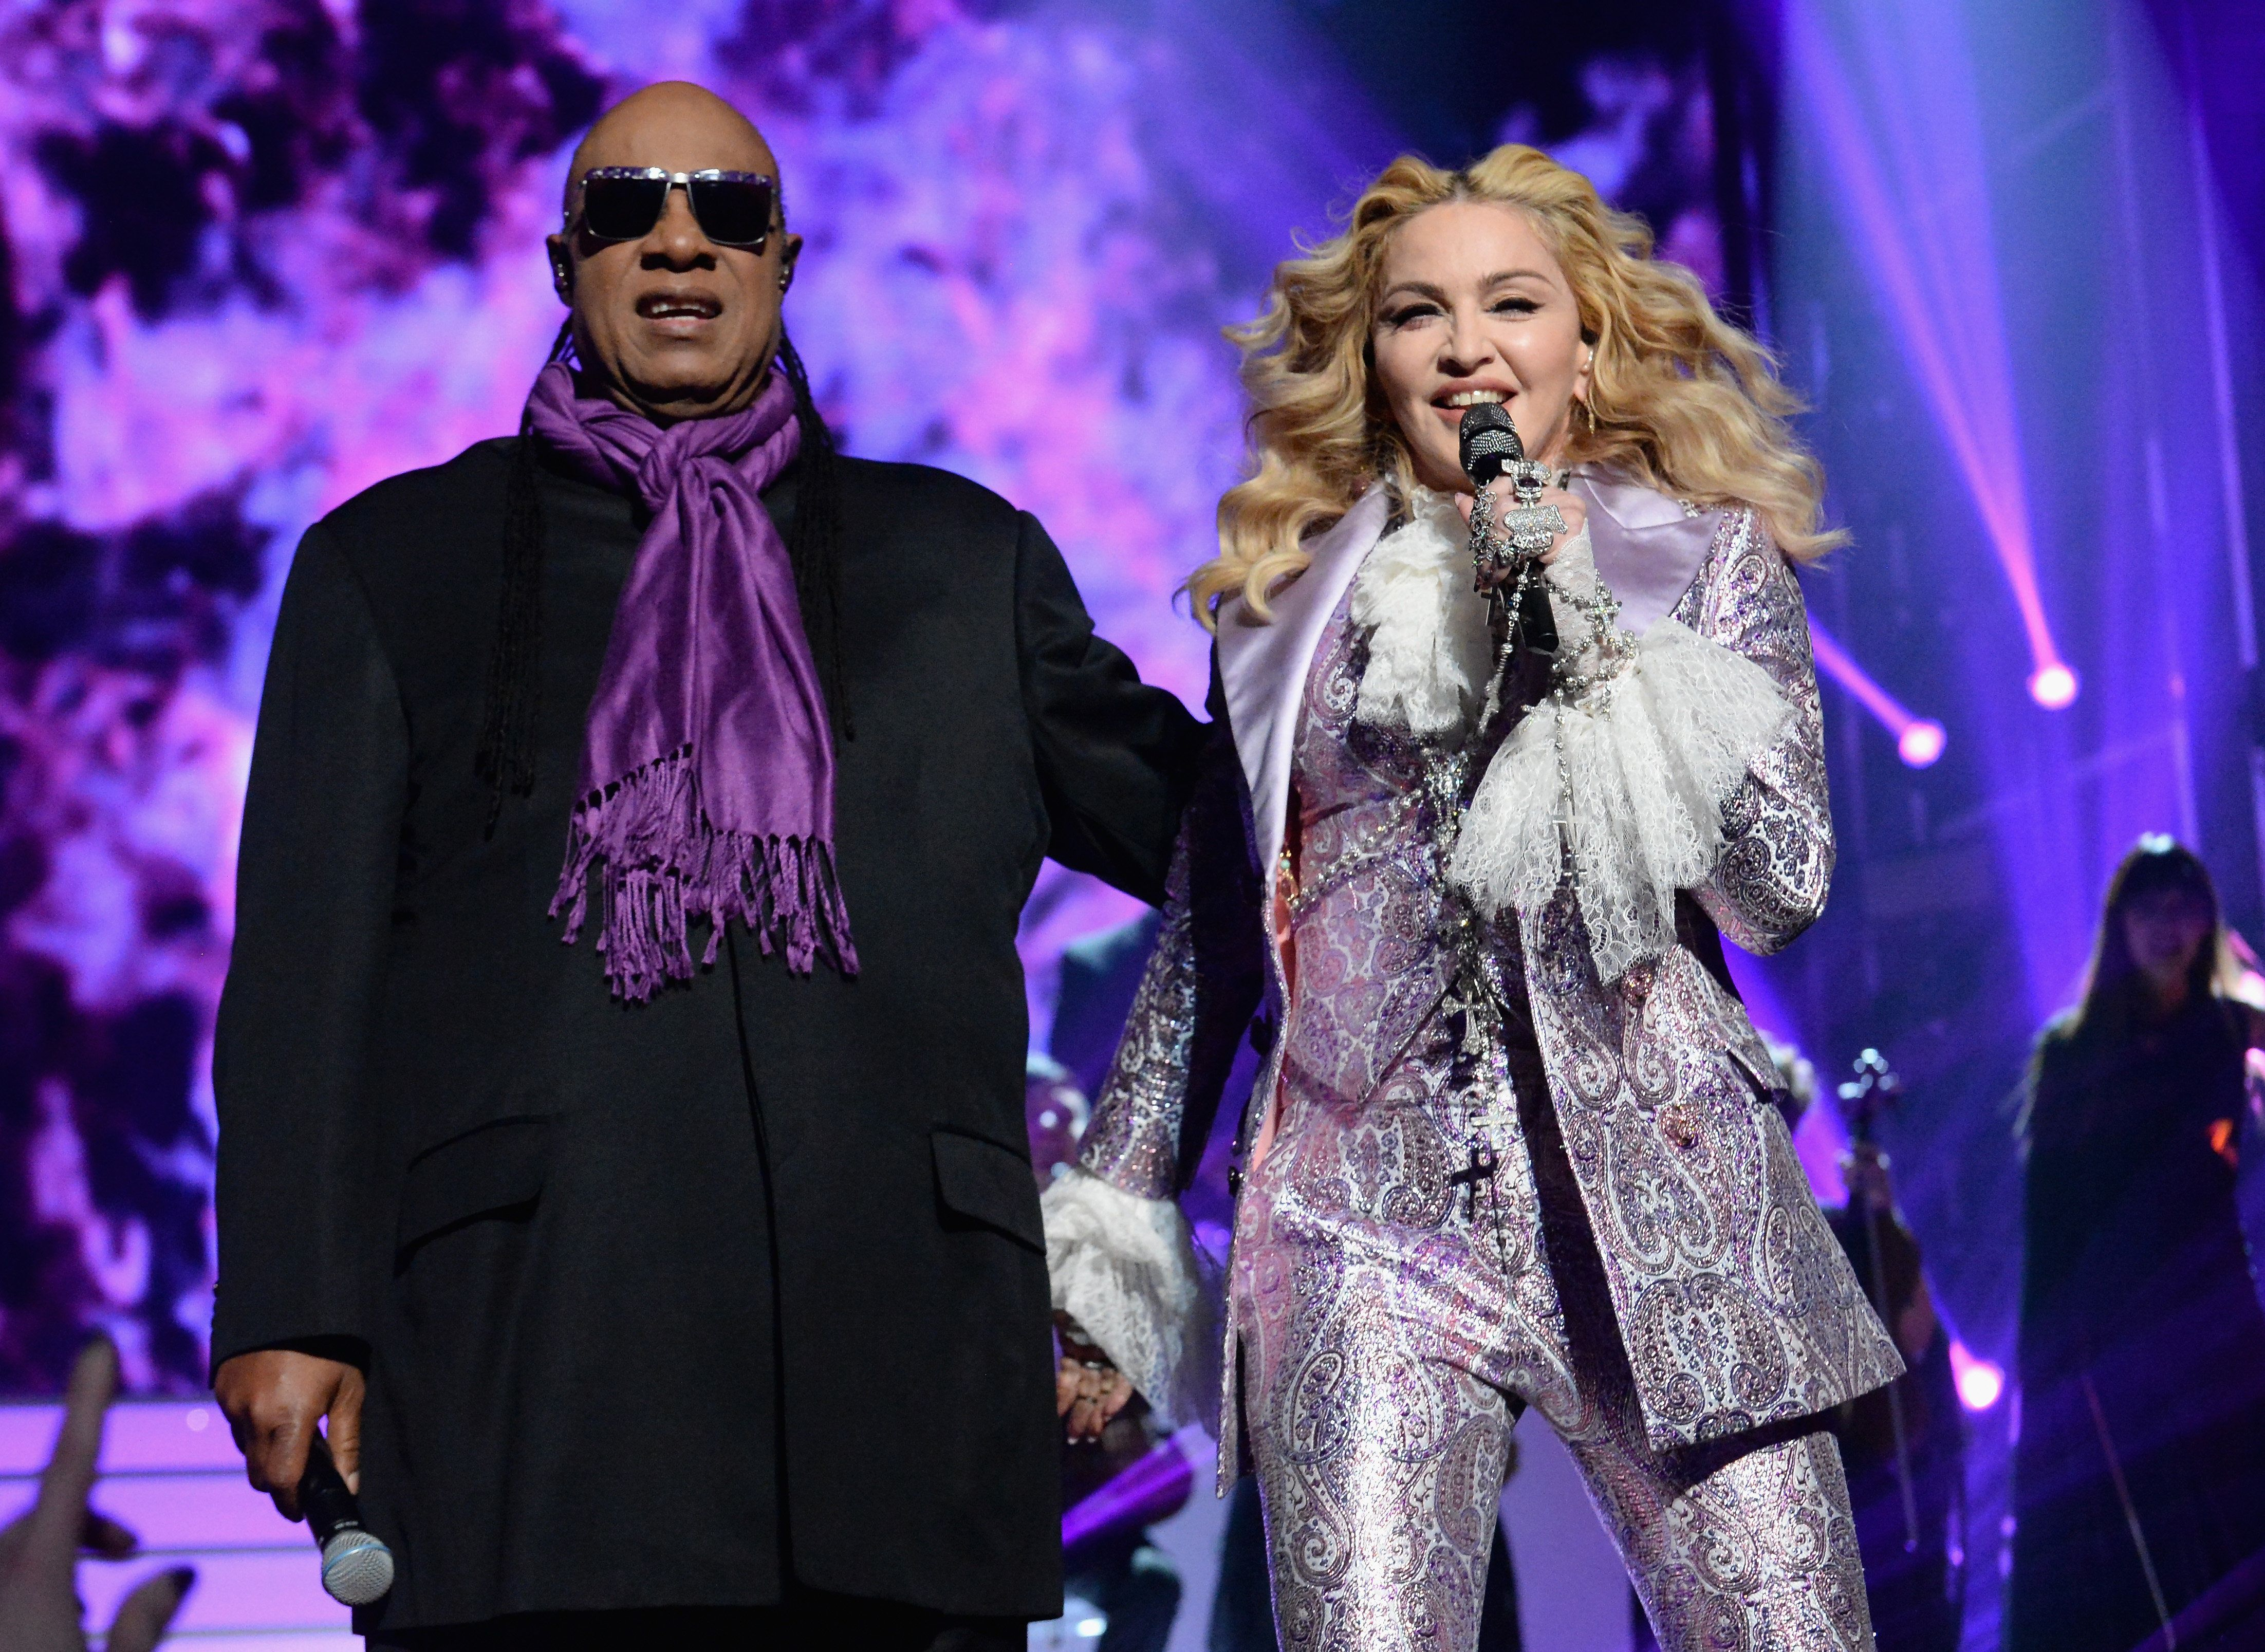 Stevie Wonder and Madonna perform a tribute to Prince onstage during the 2016 Billboard Music